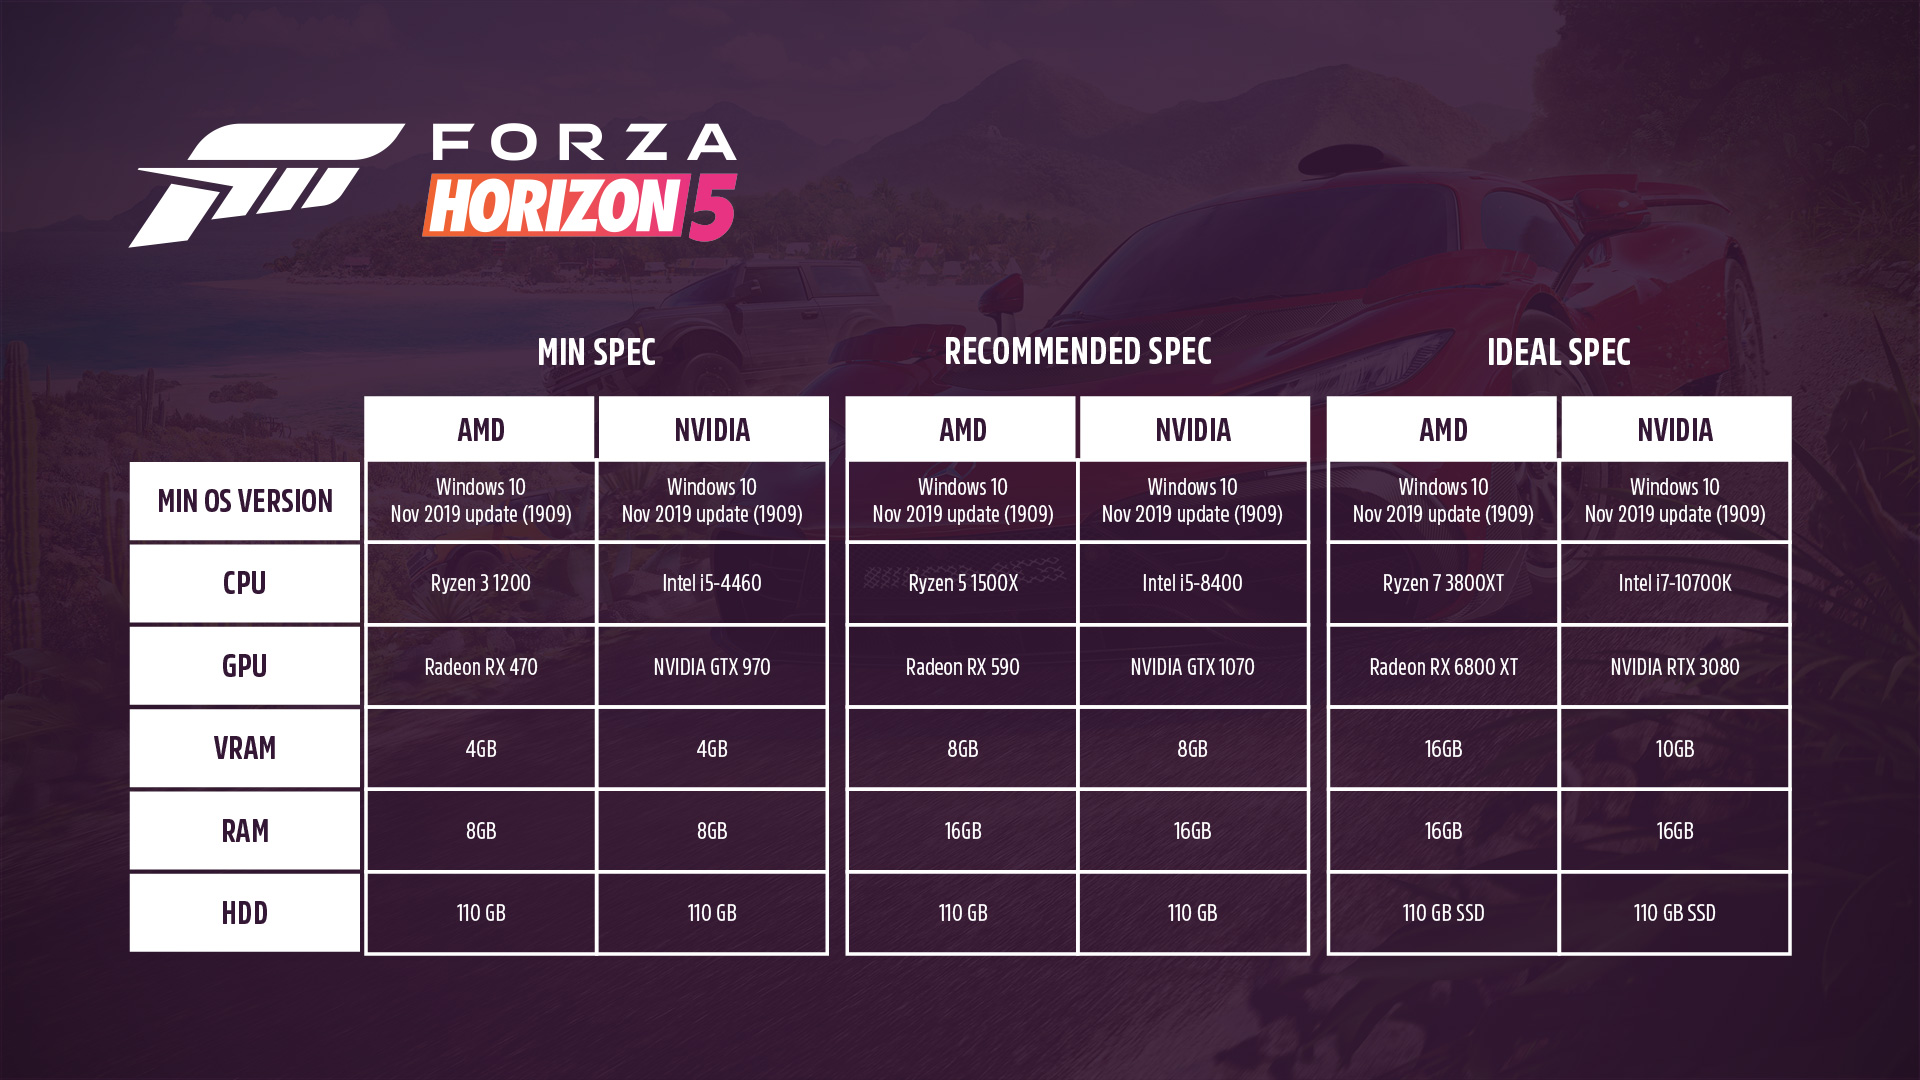 Playground games details minimum pc specifications and peripheral support for forza horizon 5 - onmsft. Com - september 30, 2021